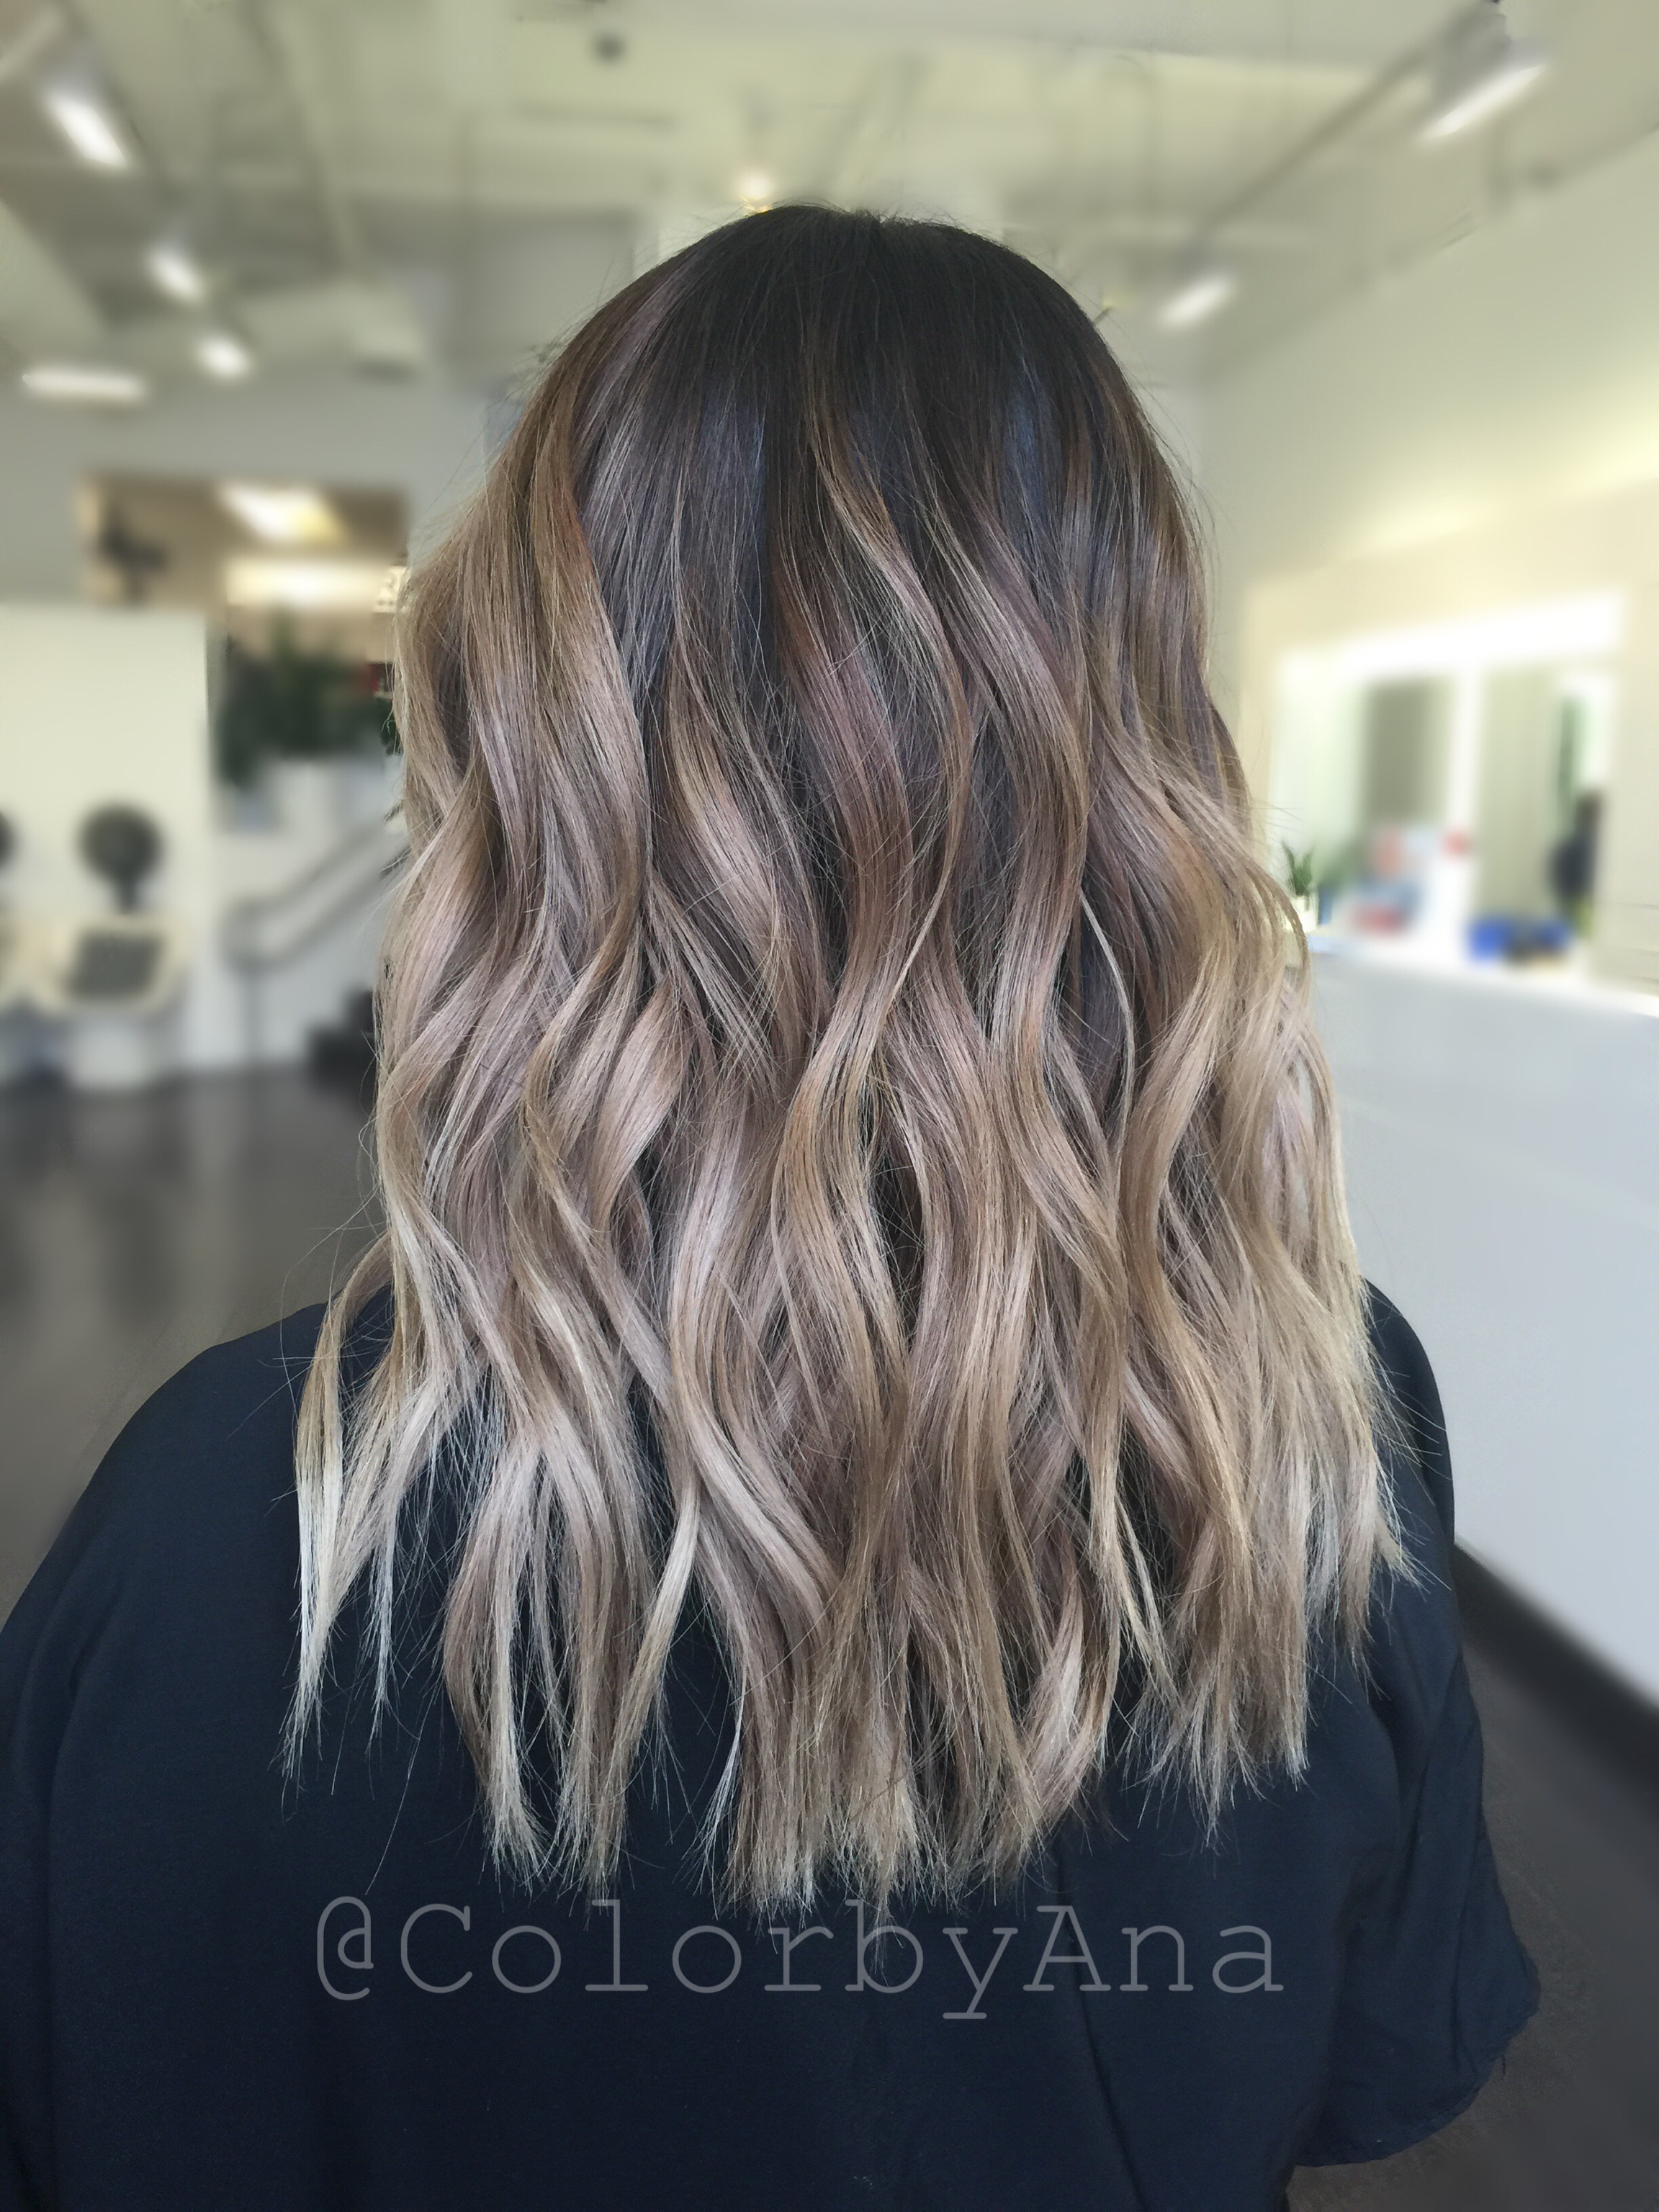 Color By Colorbyana Blonde Balayage Cristophe Salon Fashion Island Newport Beach Orange County California Bea Hair Styles Balayage Hair Wedding Hair Colors